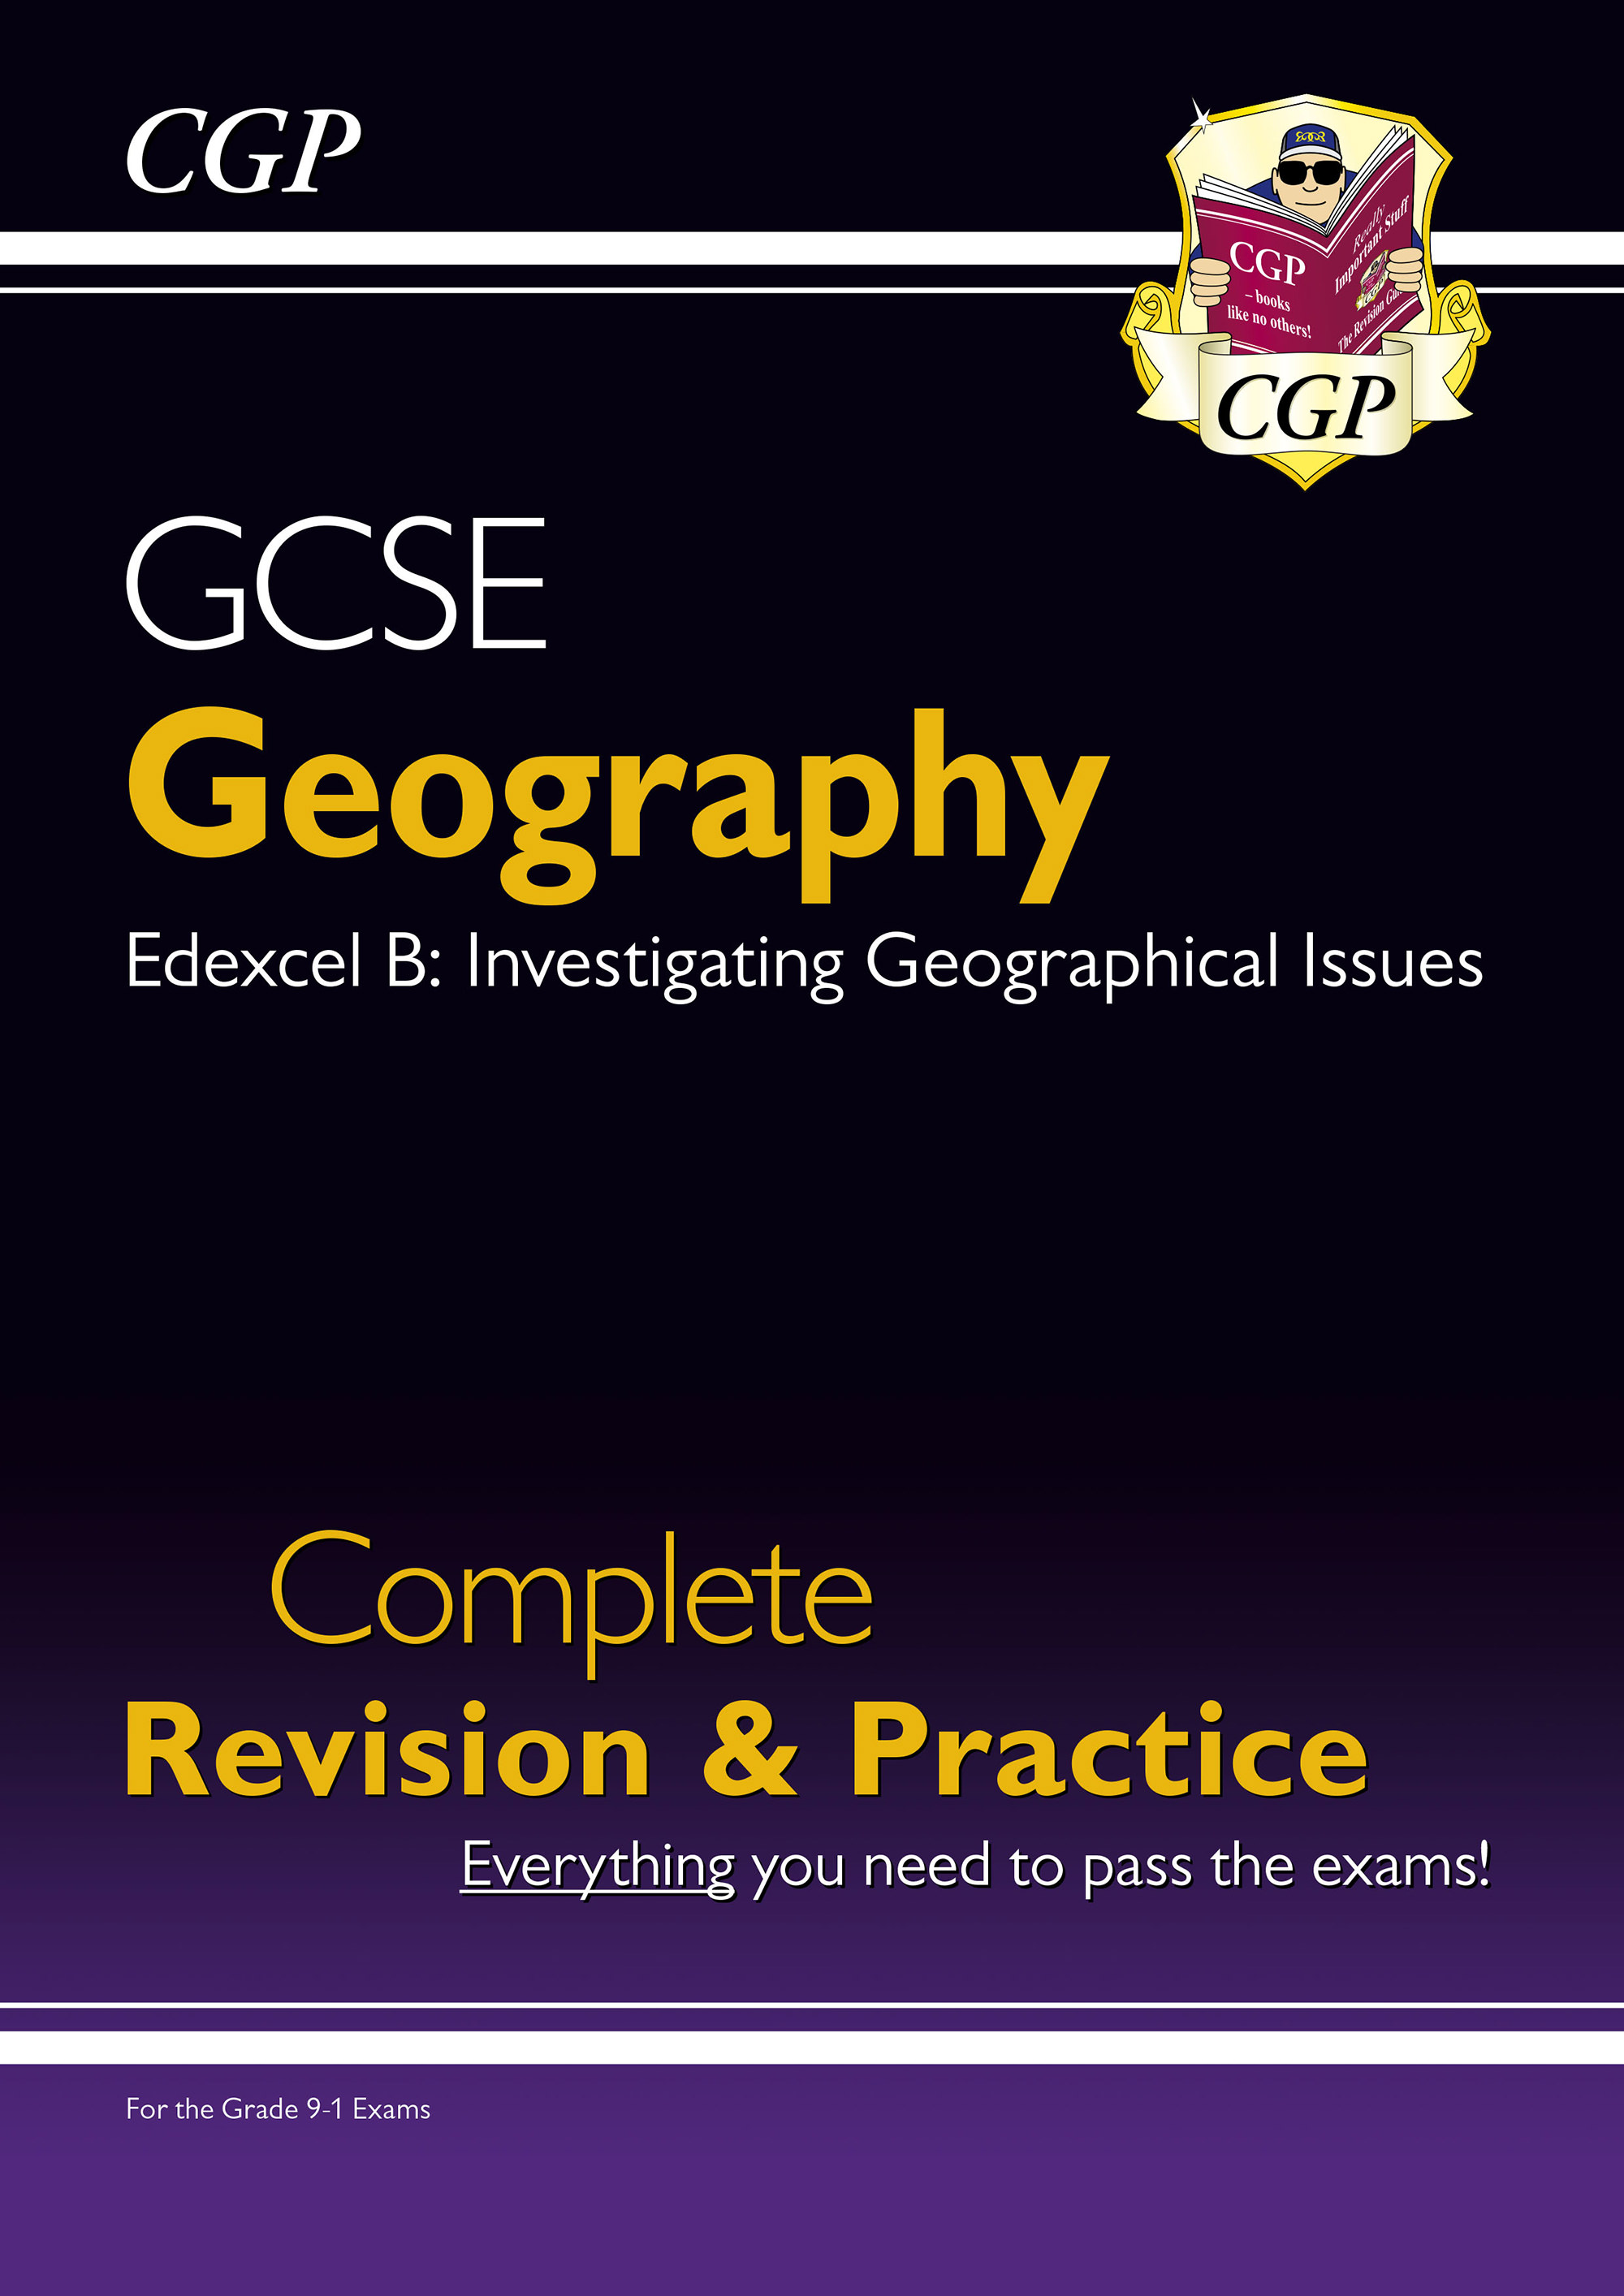 GES41DK - New Grade 9-1 GCSE Geography Edexcel B Complete Revision & Practice